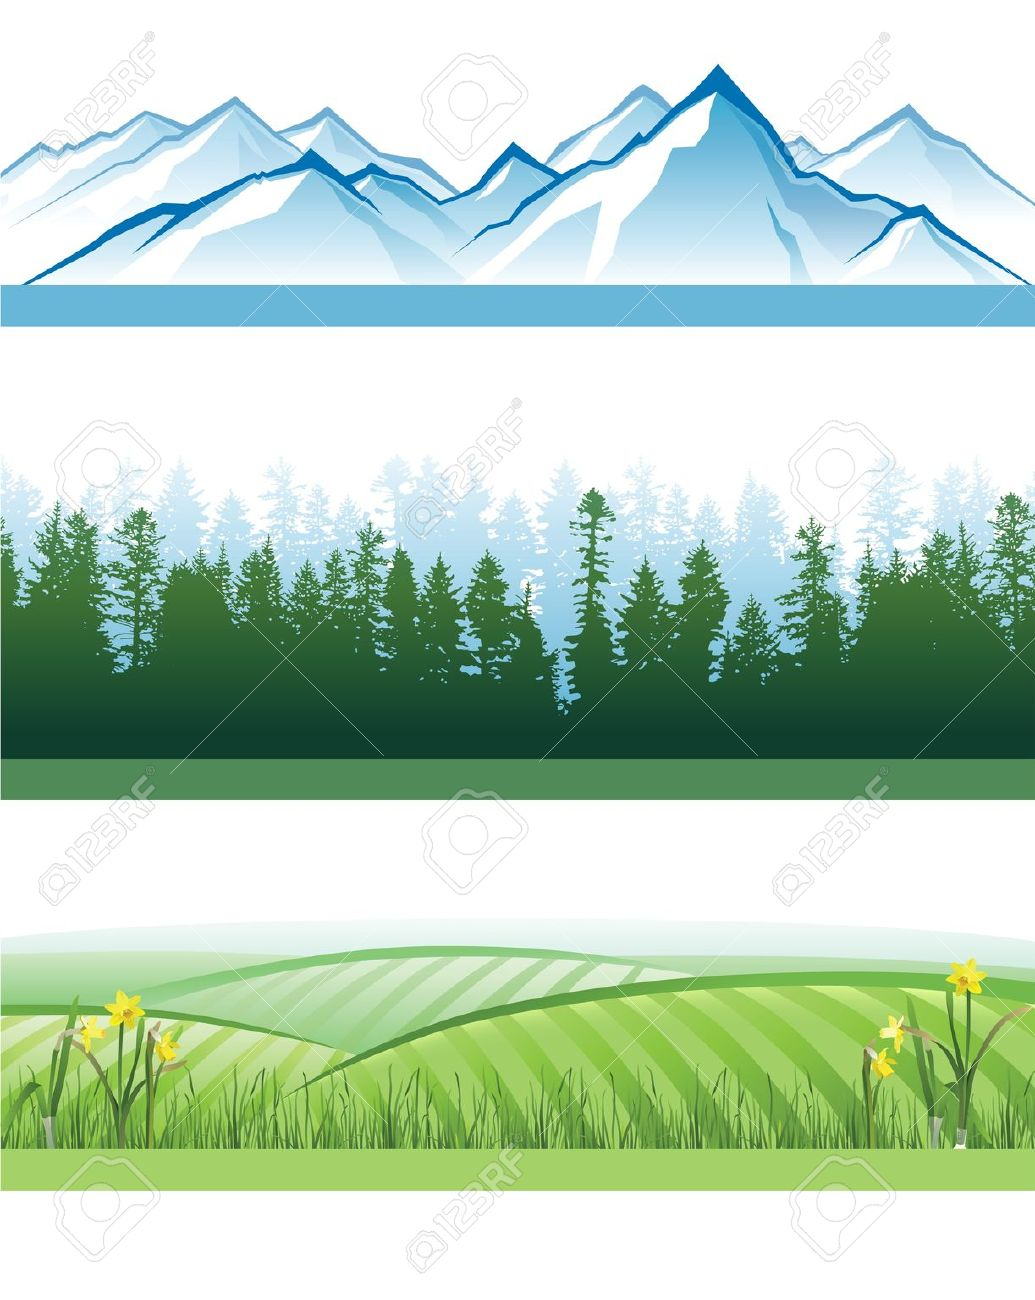 3 Colorful Landscape Banners With Mountains, Forests And Hills.